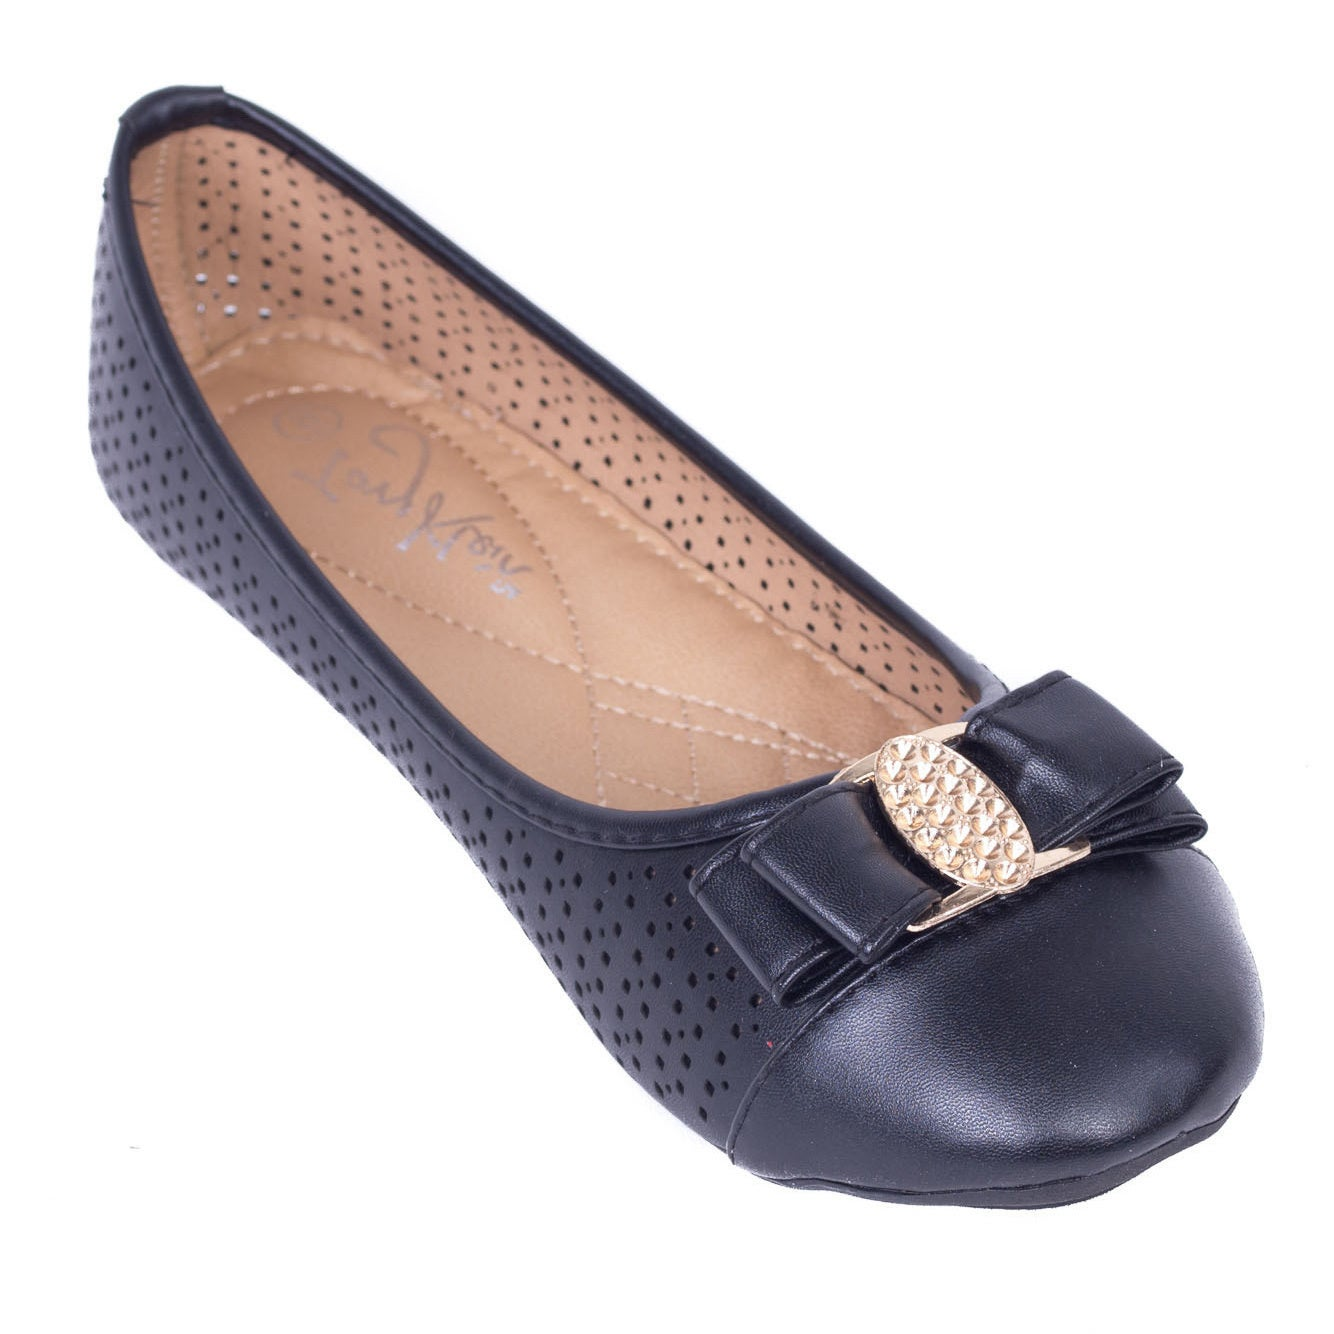 Overstock.com Women's Shimmering Buckle Perforated Ballerina Flats at Sears.com